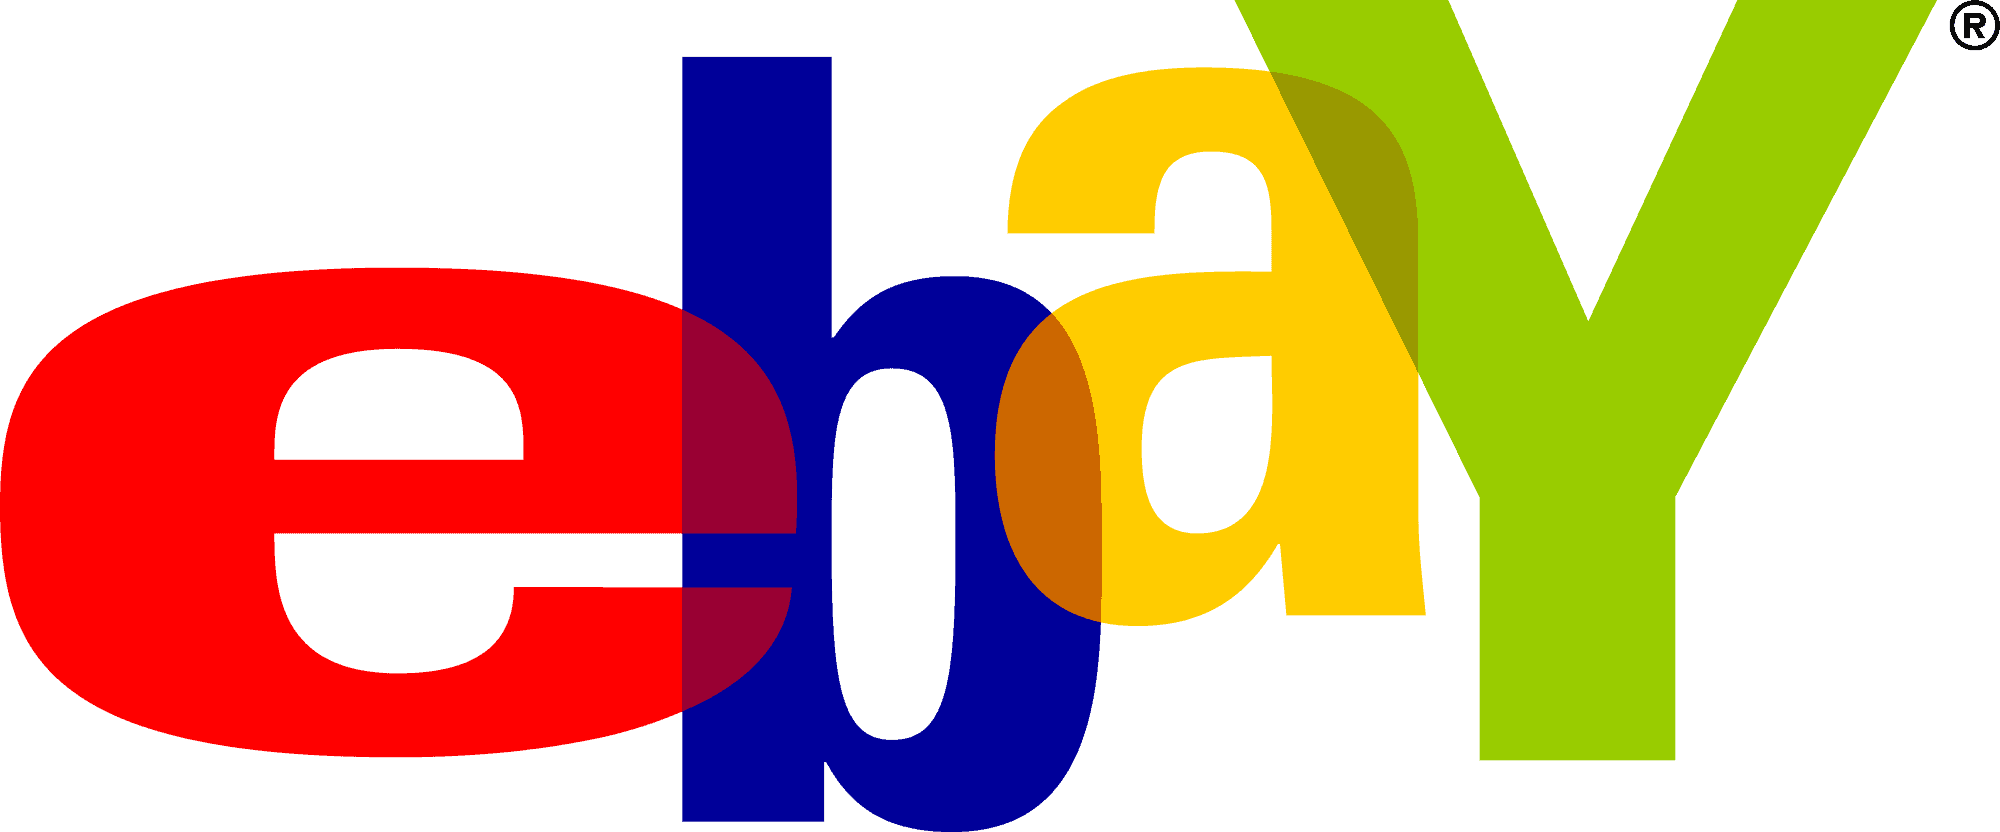 Why An eBay Seller Should Buy on eBay